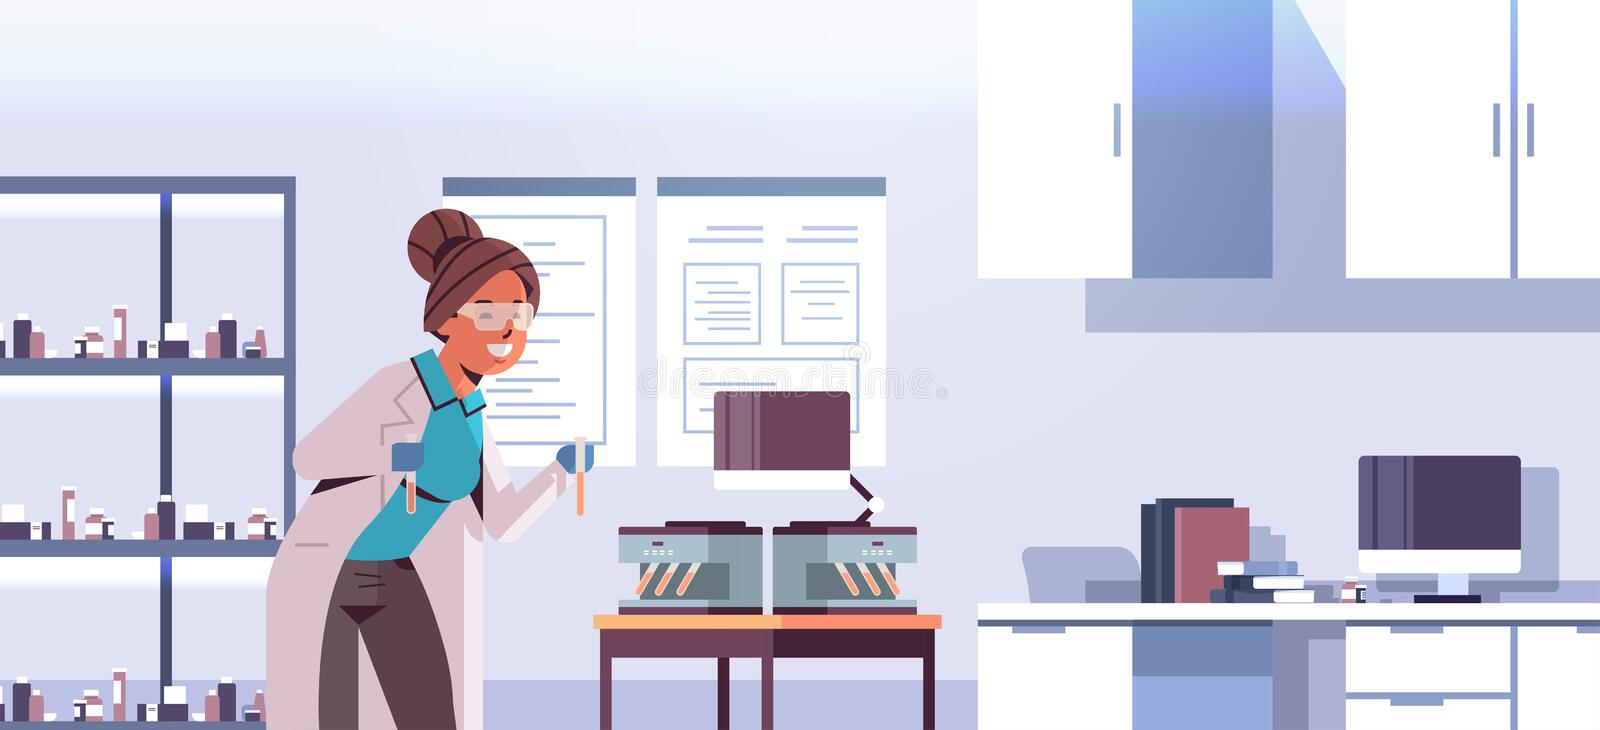 Scientist holding test tubes with blood samples woman in uniform using analyzer medical machine research science royalty free illustration